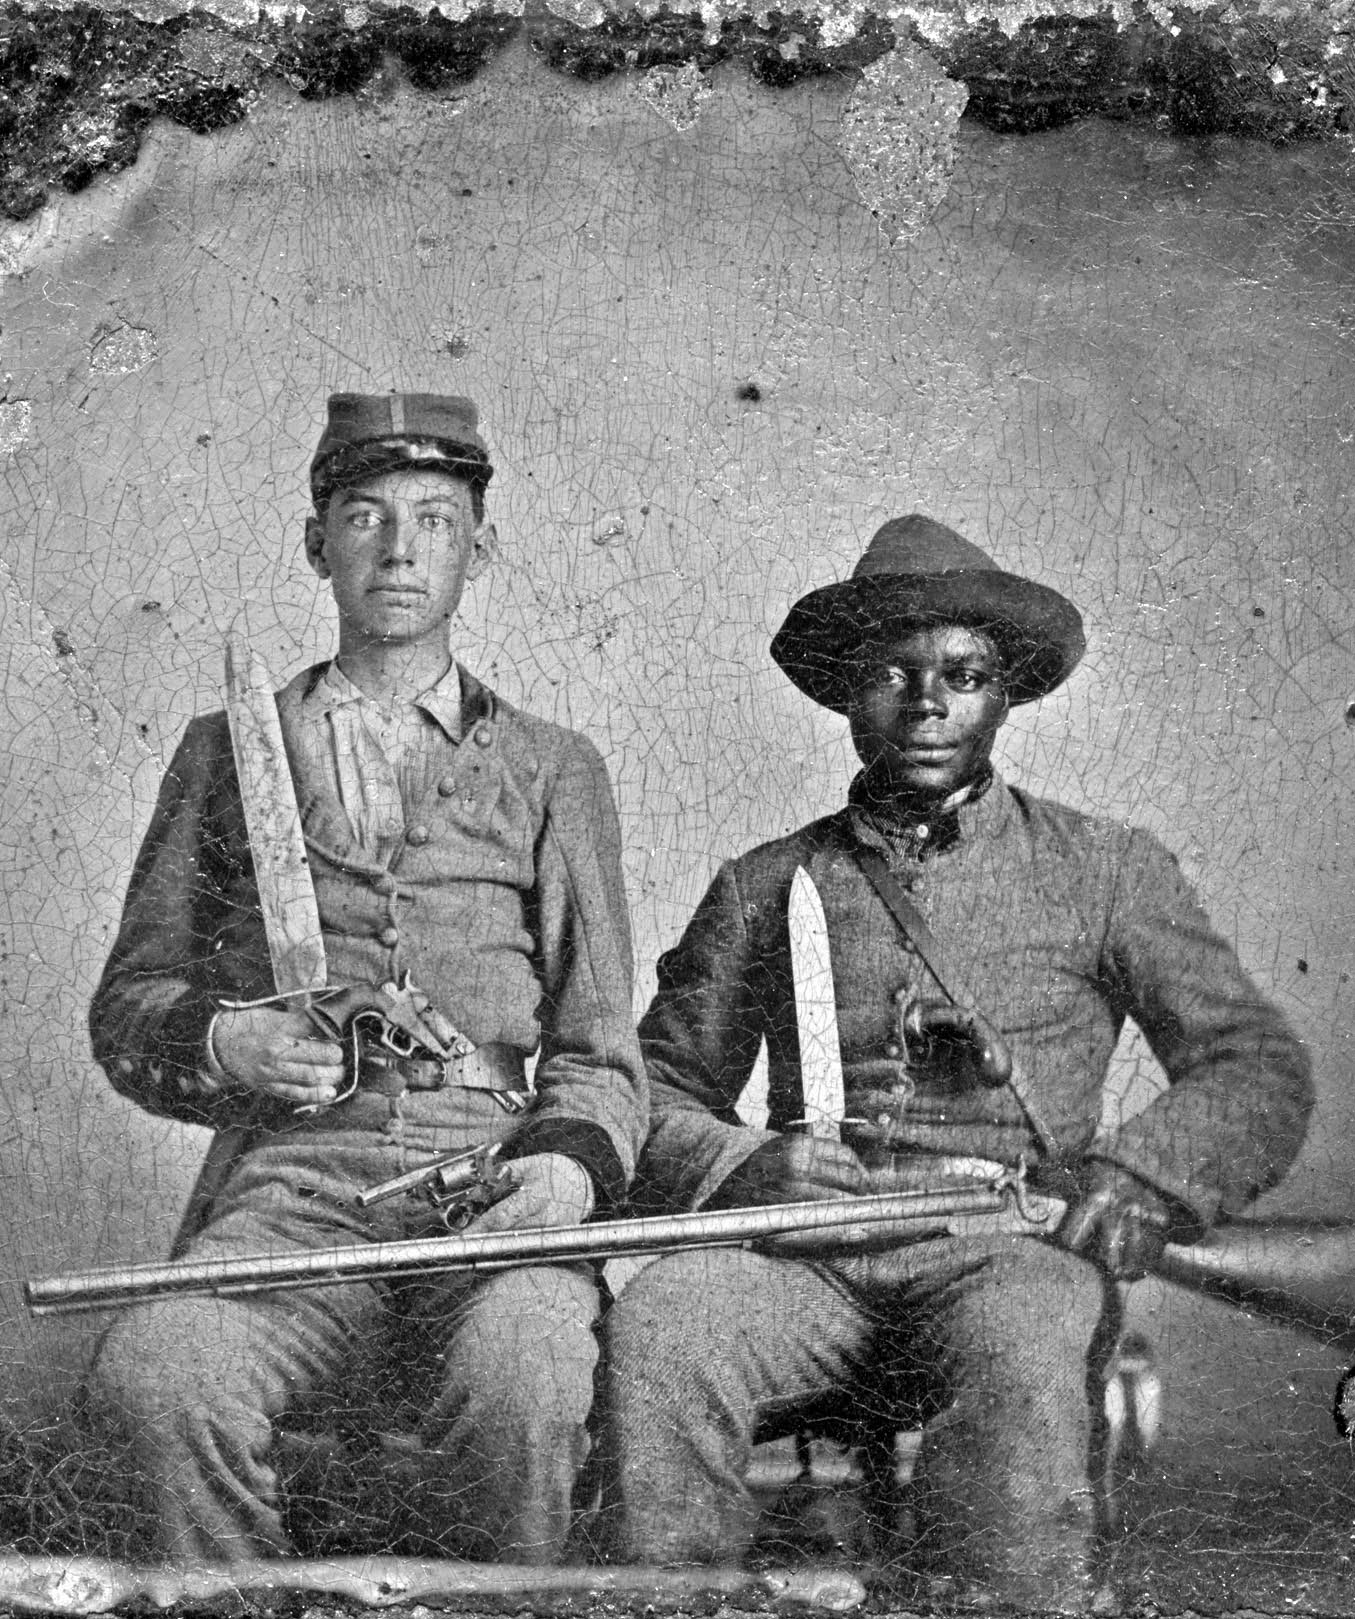 an appreciation of the african american soldiers during the civil war H istorians have only recently begun to explore the role louisiana blacks played in the civil war, despite the fact that african american military service helped shape key legacies of the war.